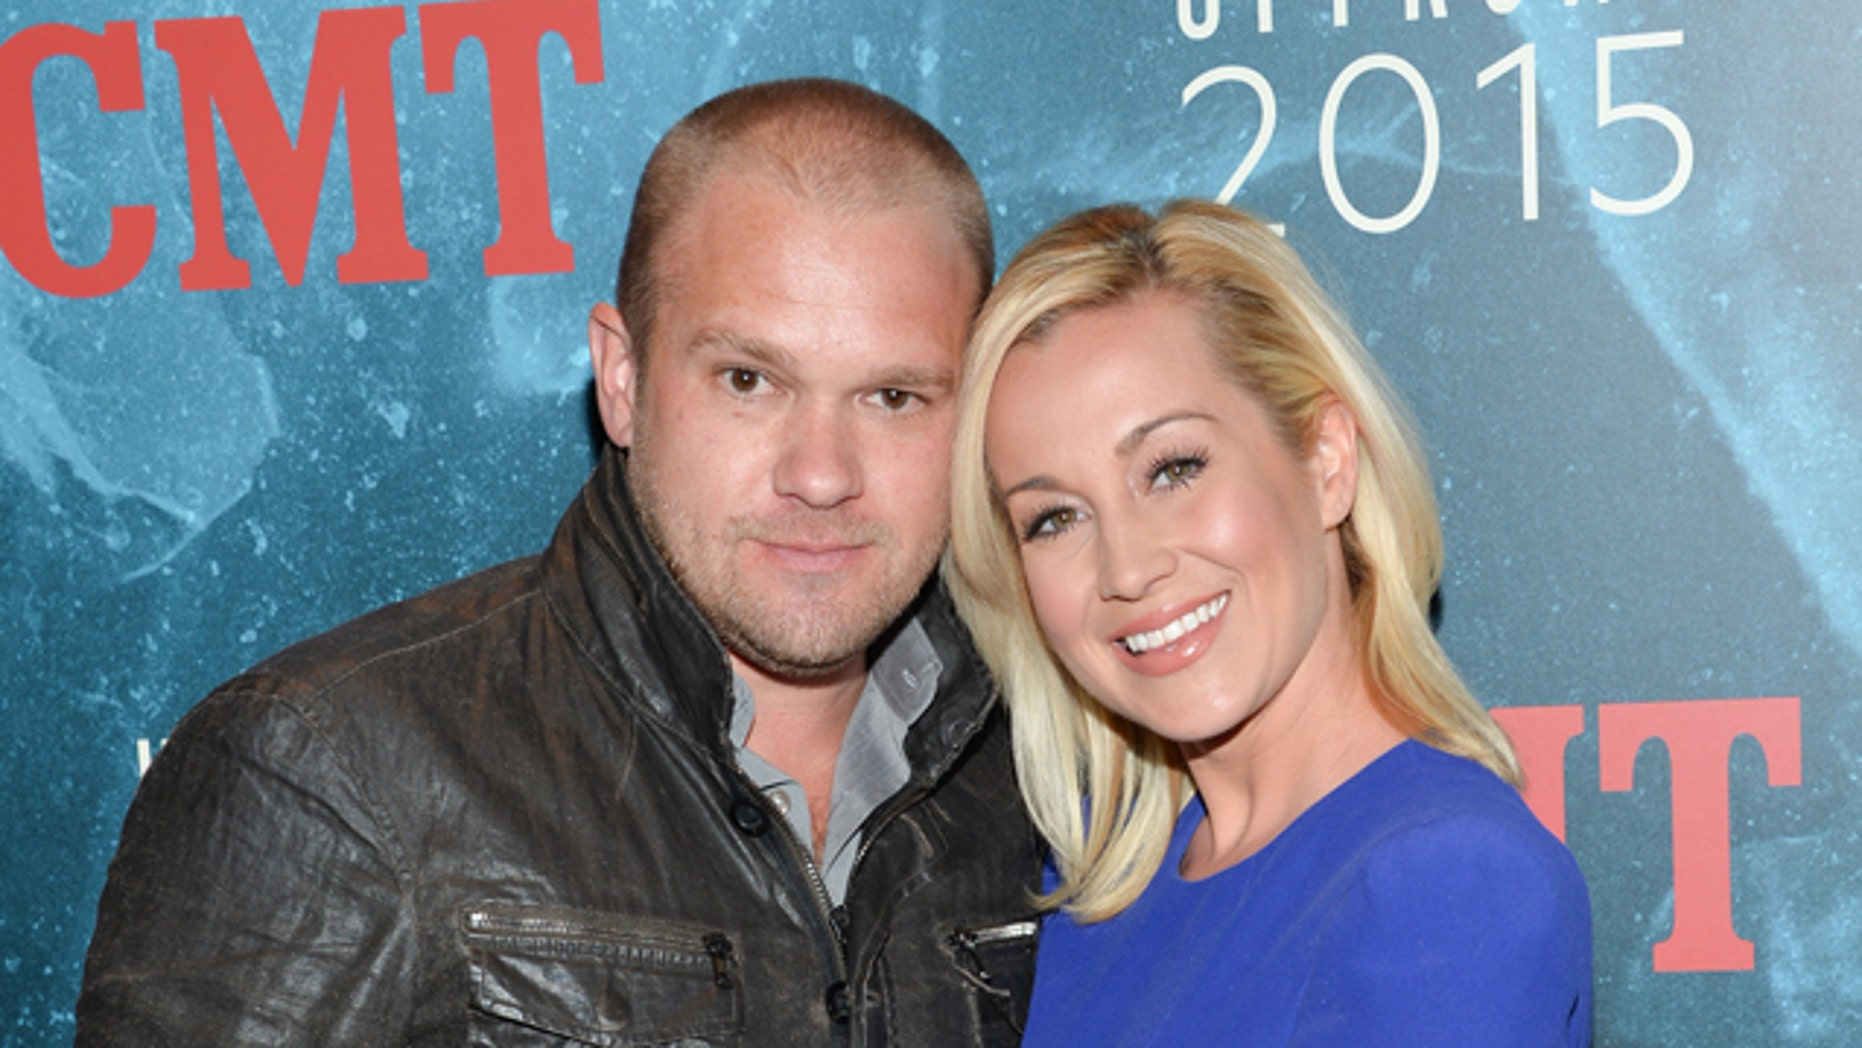 Singer Kellie Pickler and husband Kyle Jacobs attend the 2015 CMT Upfront event at the TimesCenter on Thursday, April 2, 2015, in New York.